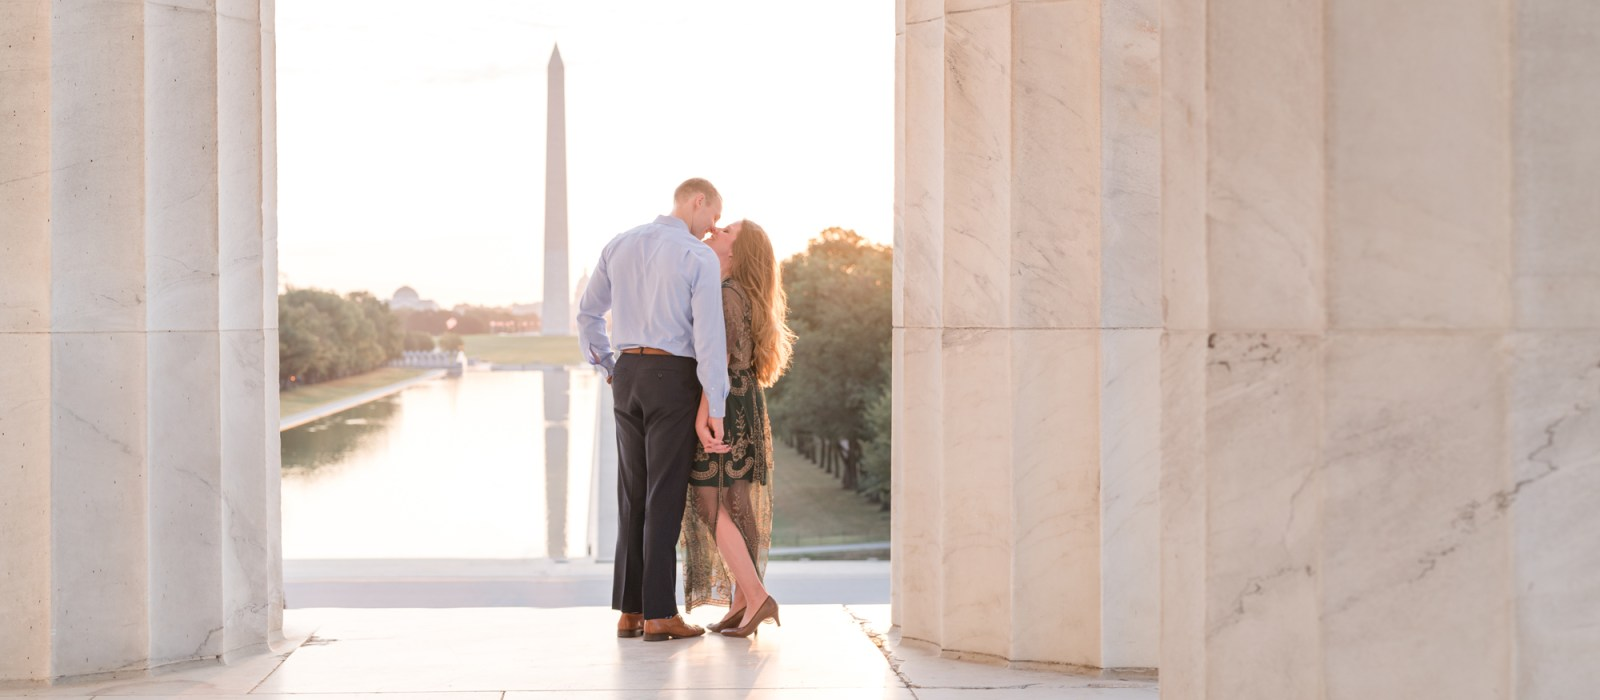 A couple holds hands and kisses during their Washington DC engagement session at the Lincoln memorial